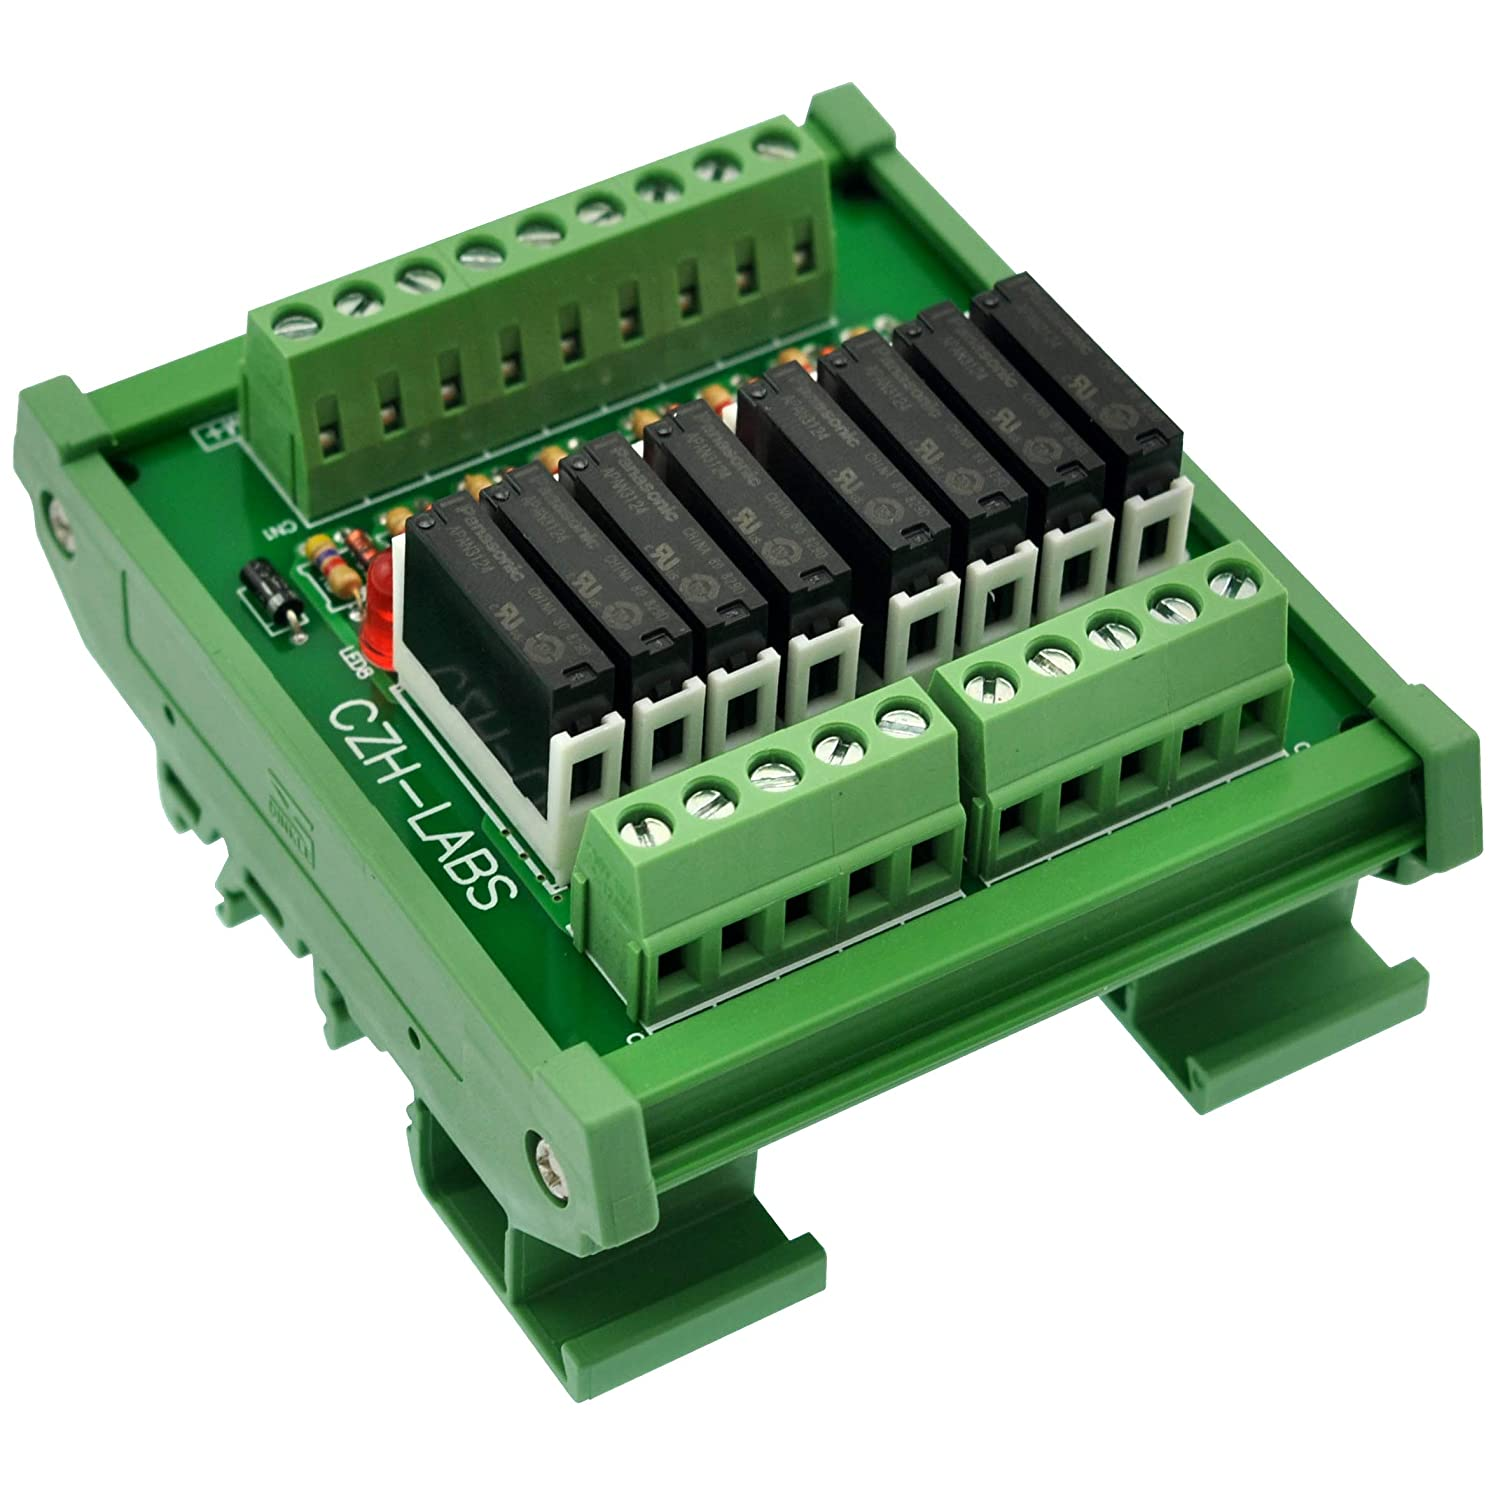 PA1 a-24 V. Electronics-Salon Slim DIN Rail Mount 24 V DC Sp/ültisch//NPN 8 spst-no 5 A Power Relay Modul